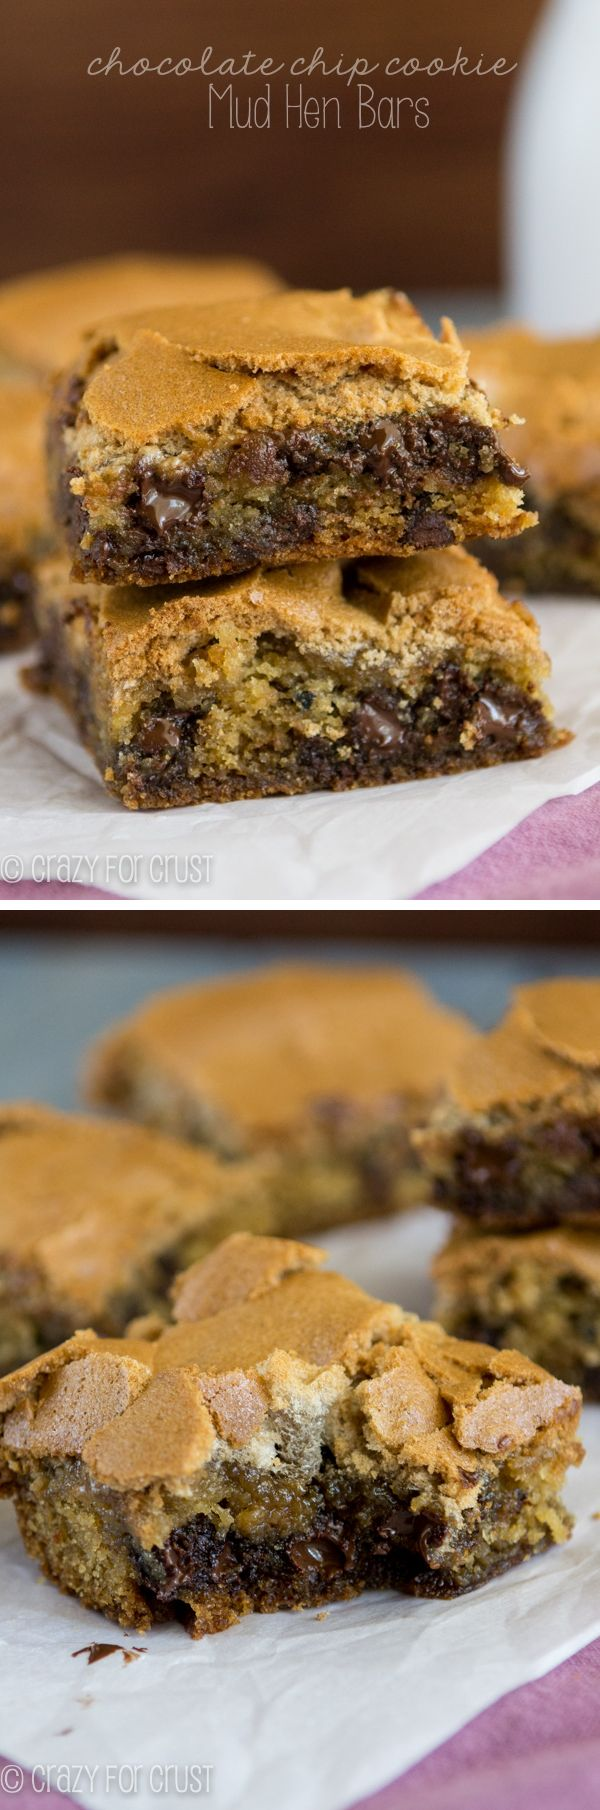 Chocolate Chip Cookie Mud Hen Bars - melty chocolate chip cookie topped with a brown sugar meringue!